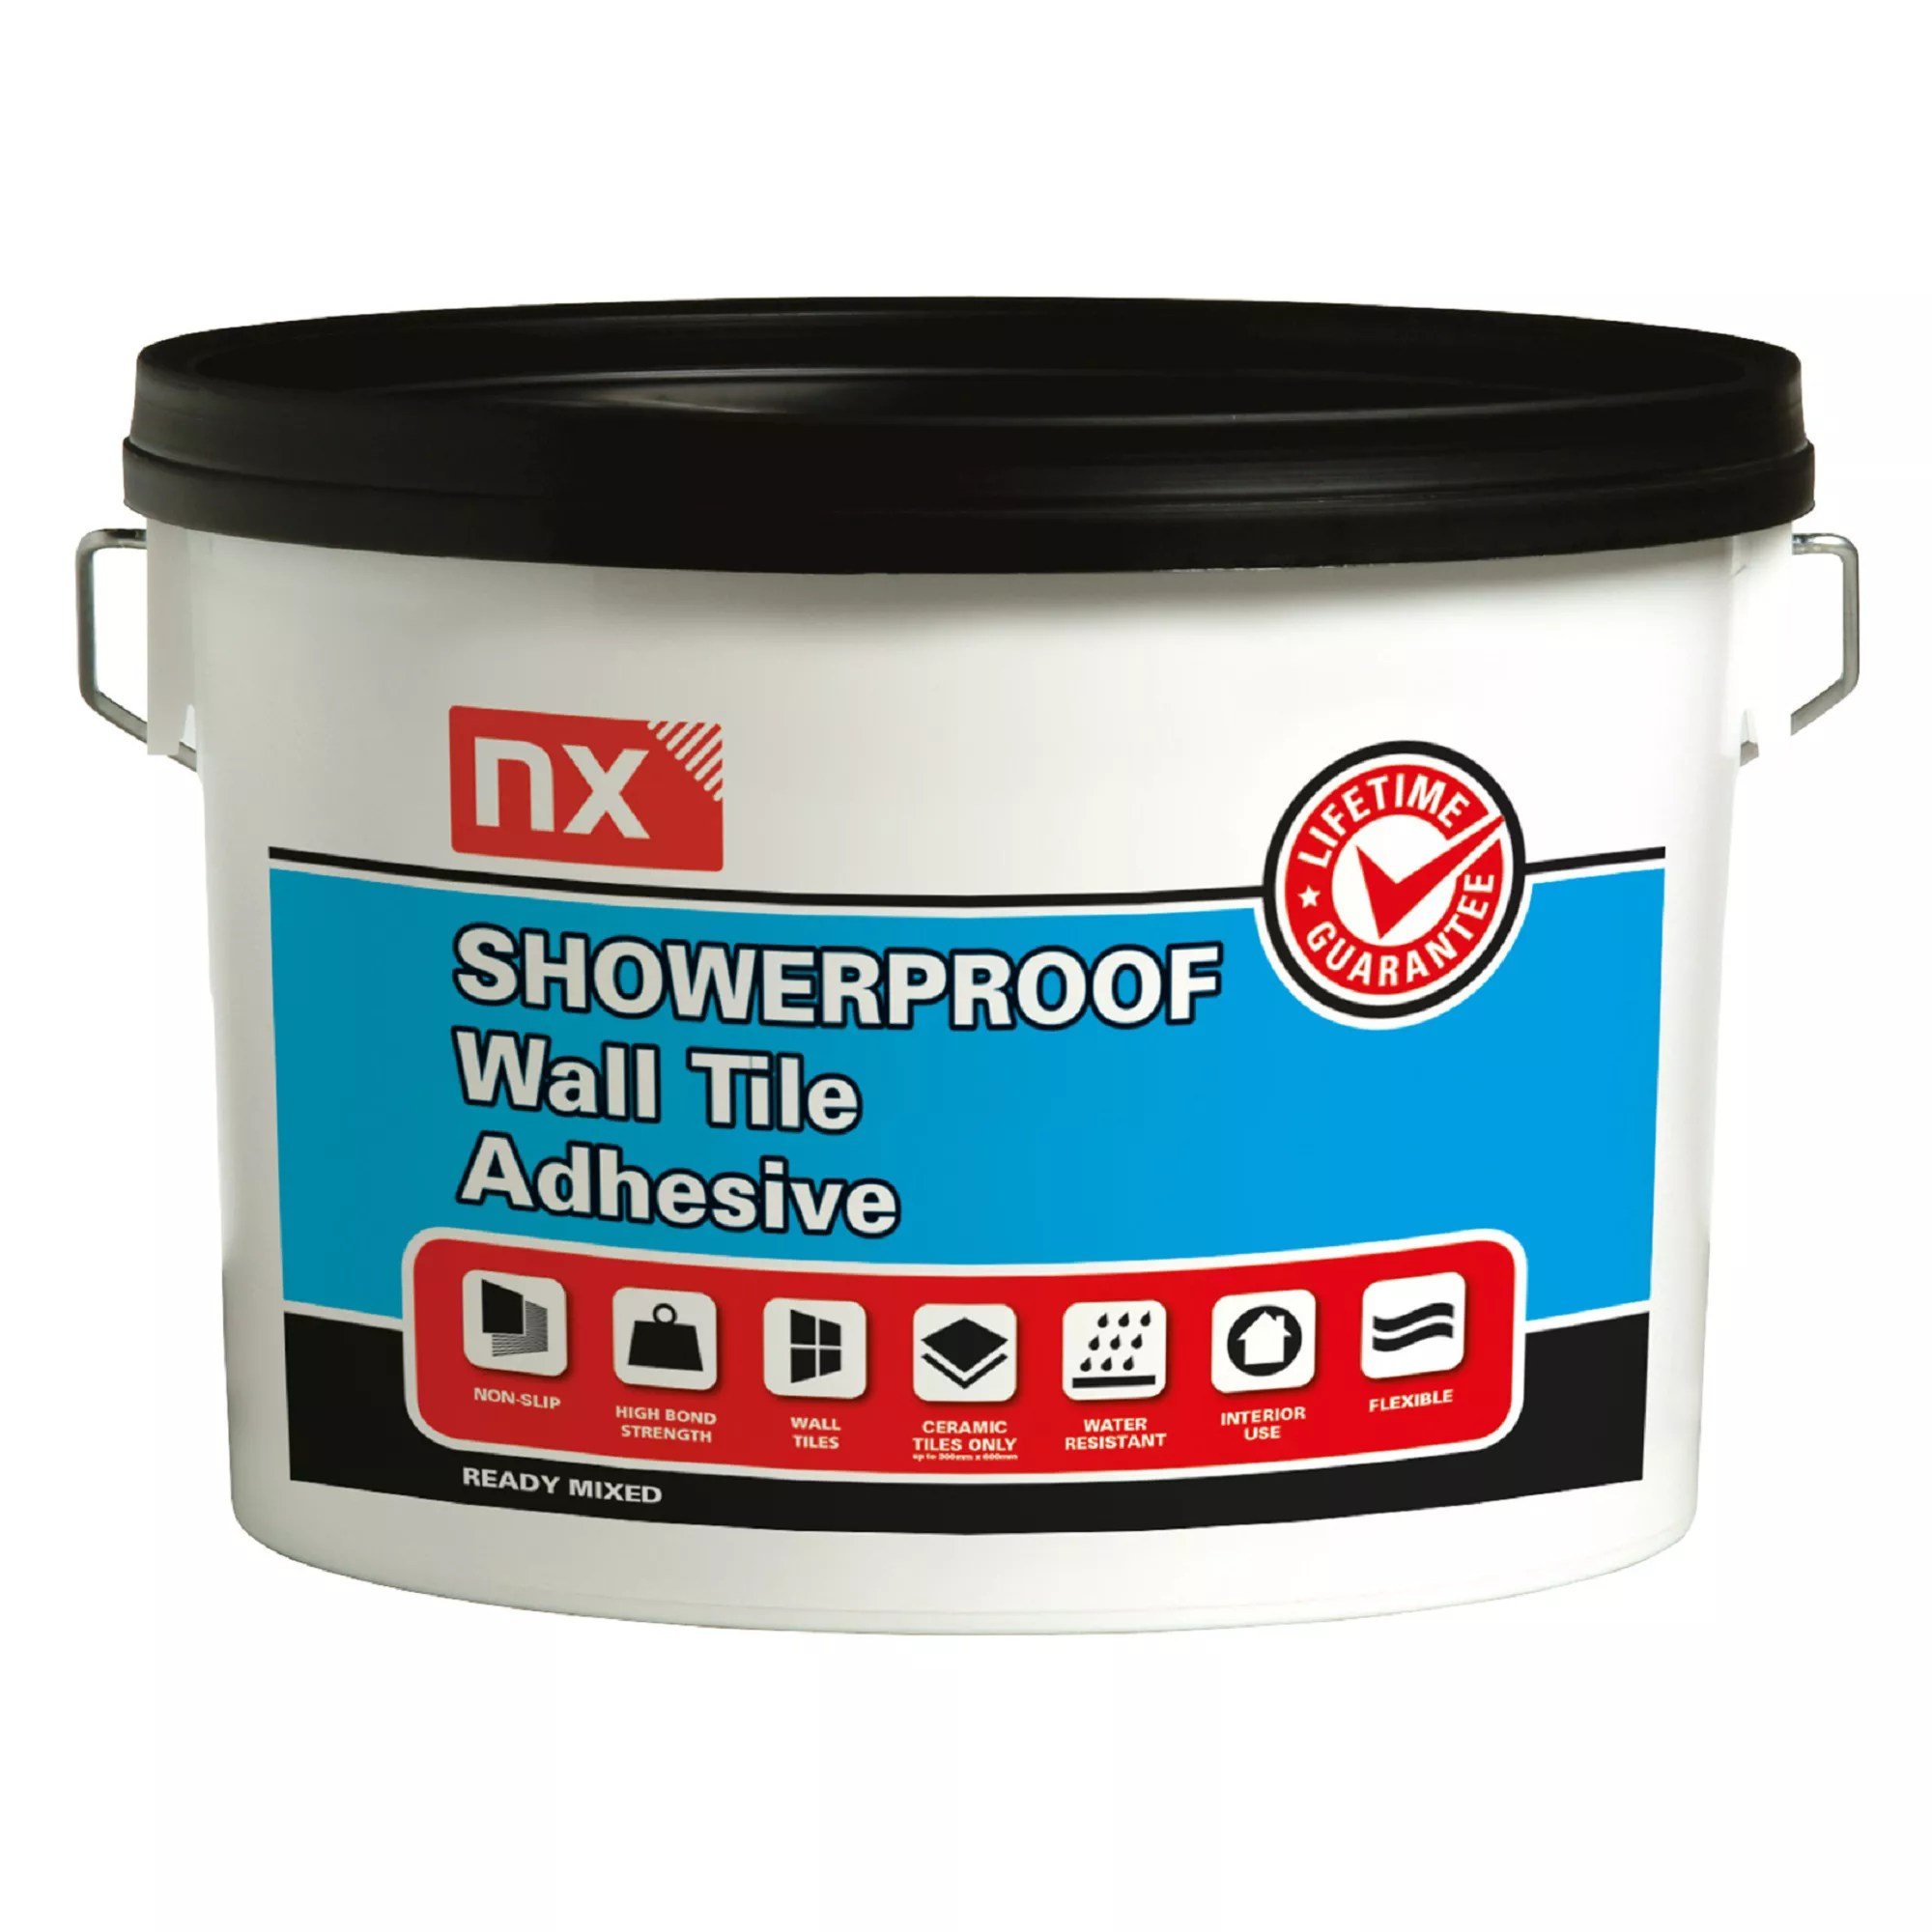 nx showerproof ready mixed bright white wall tile adhesive 2 5kg